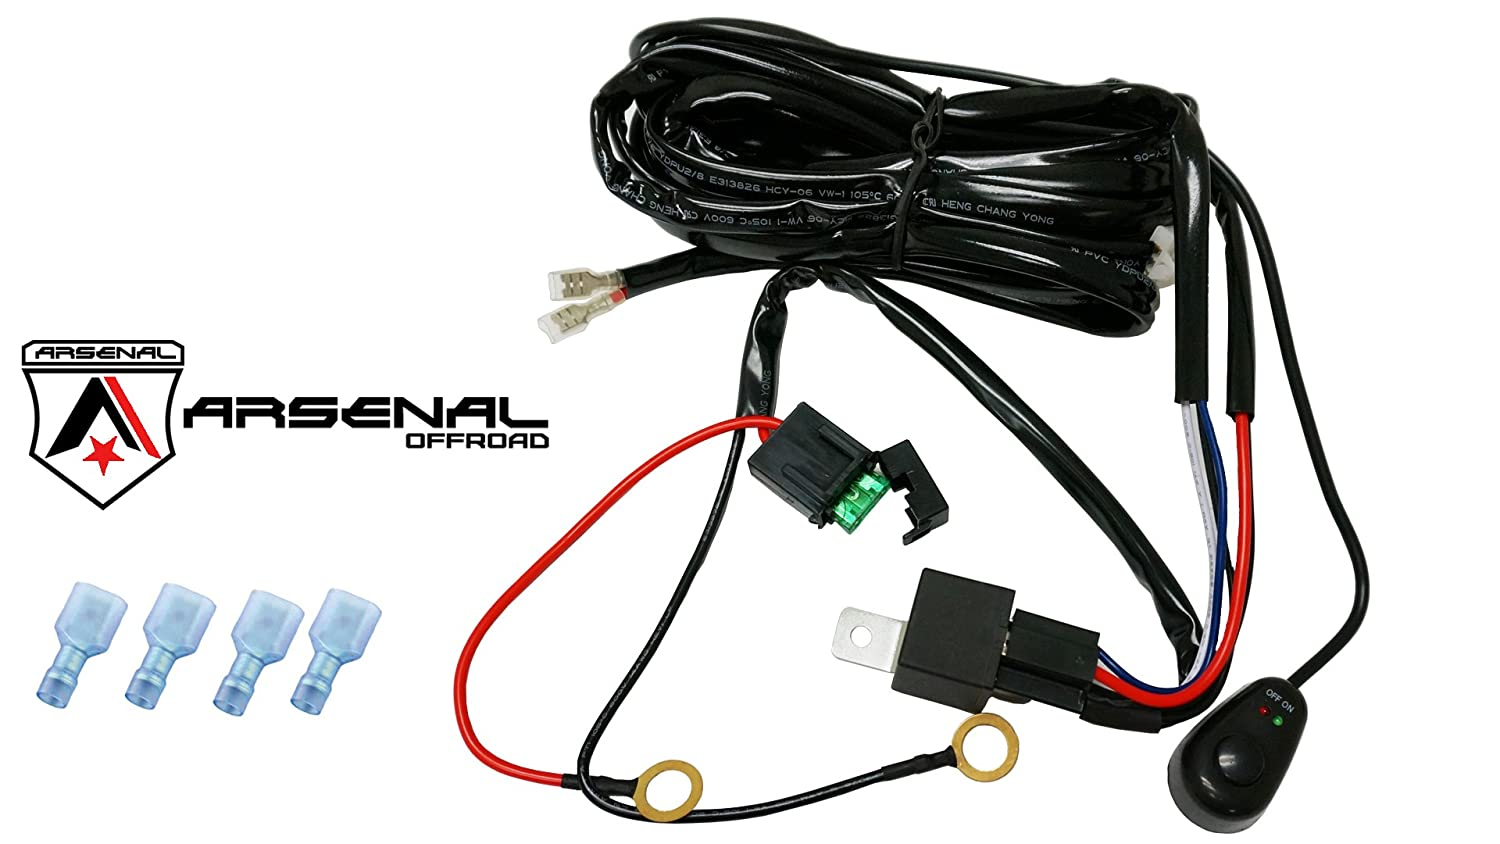 717KJzfkLyL._SL1500_ amazon com 1 arsenal offroad led light bar universal wiring led wiring harness at webbmarketing.co